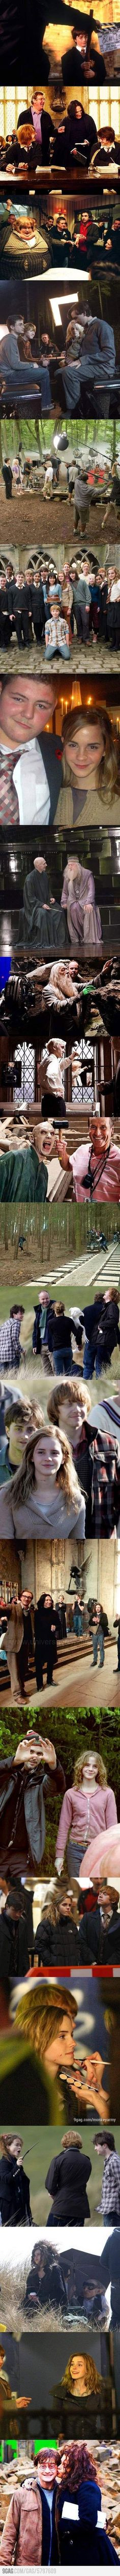 Behind the scenes...my favorite is the shot with Dumbledore/Voldemort laughing together.